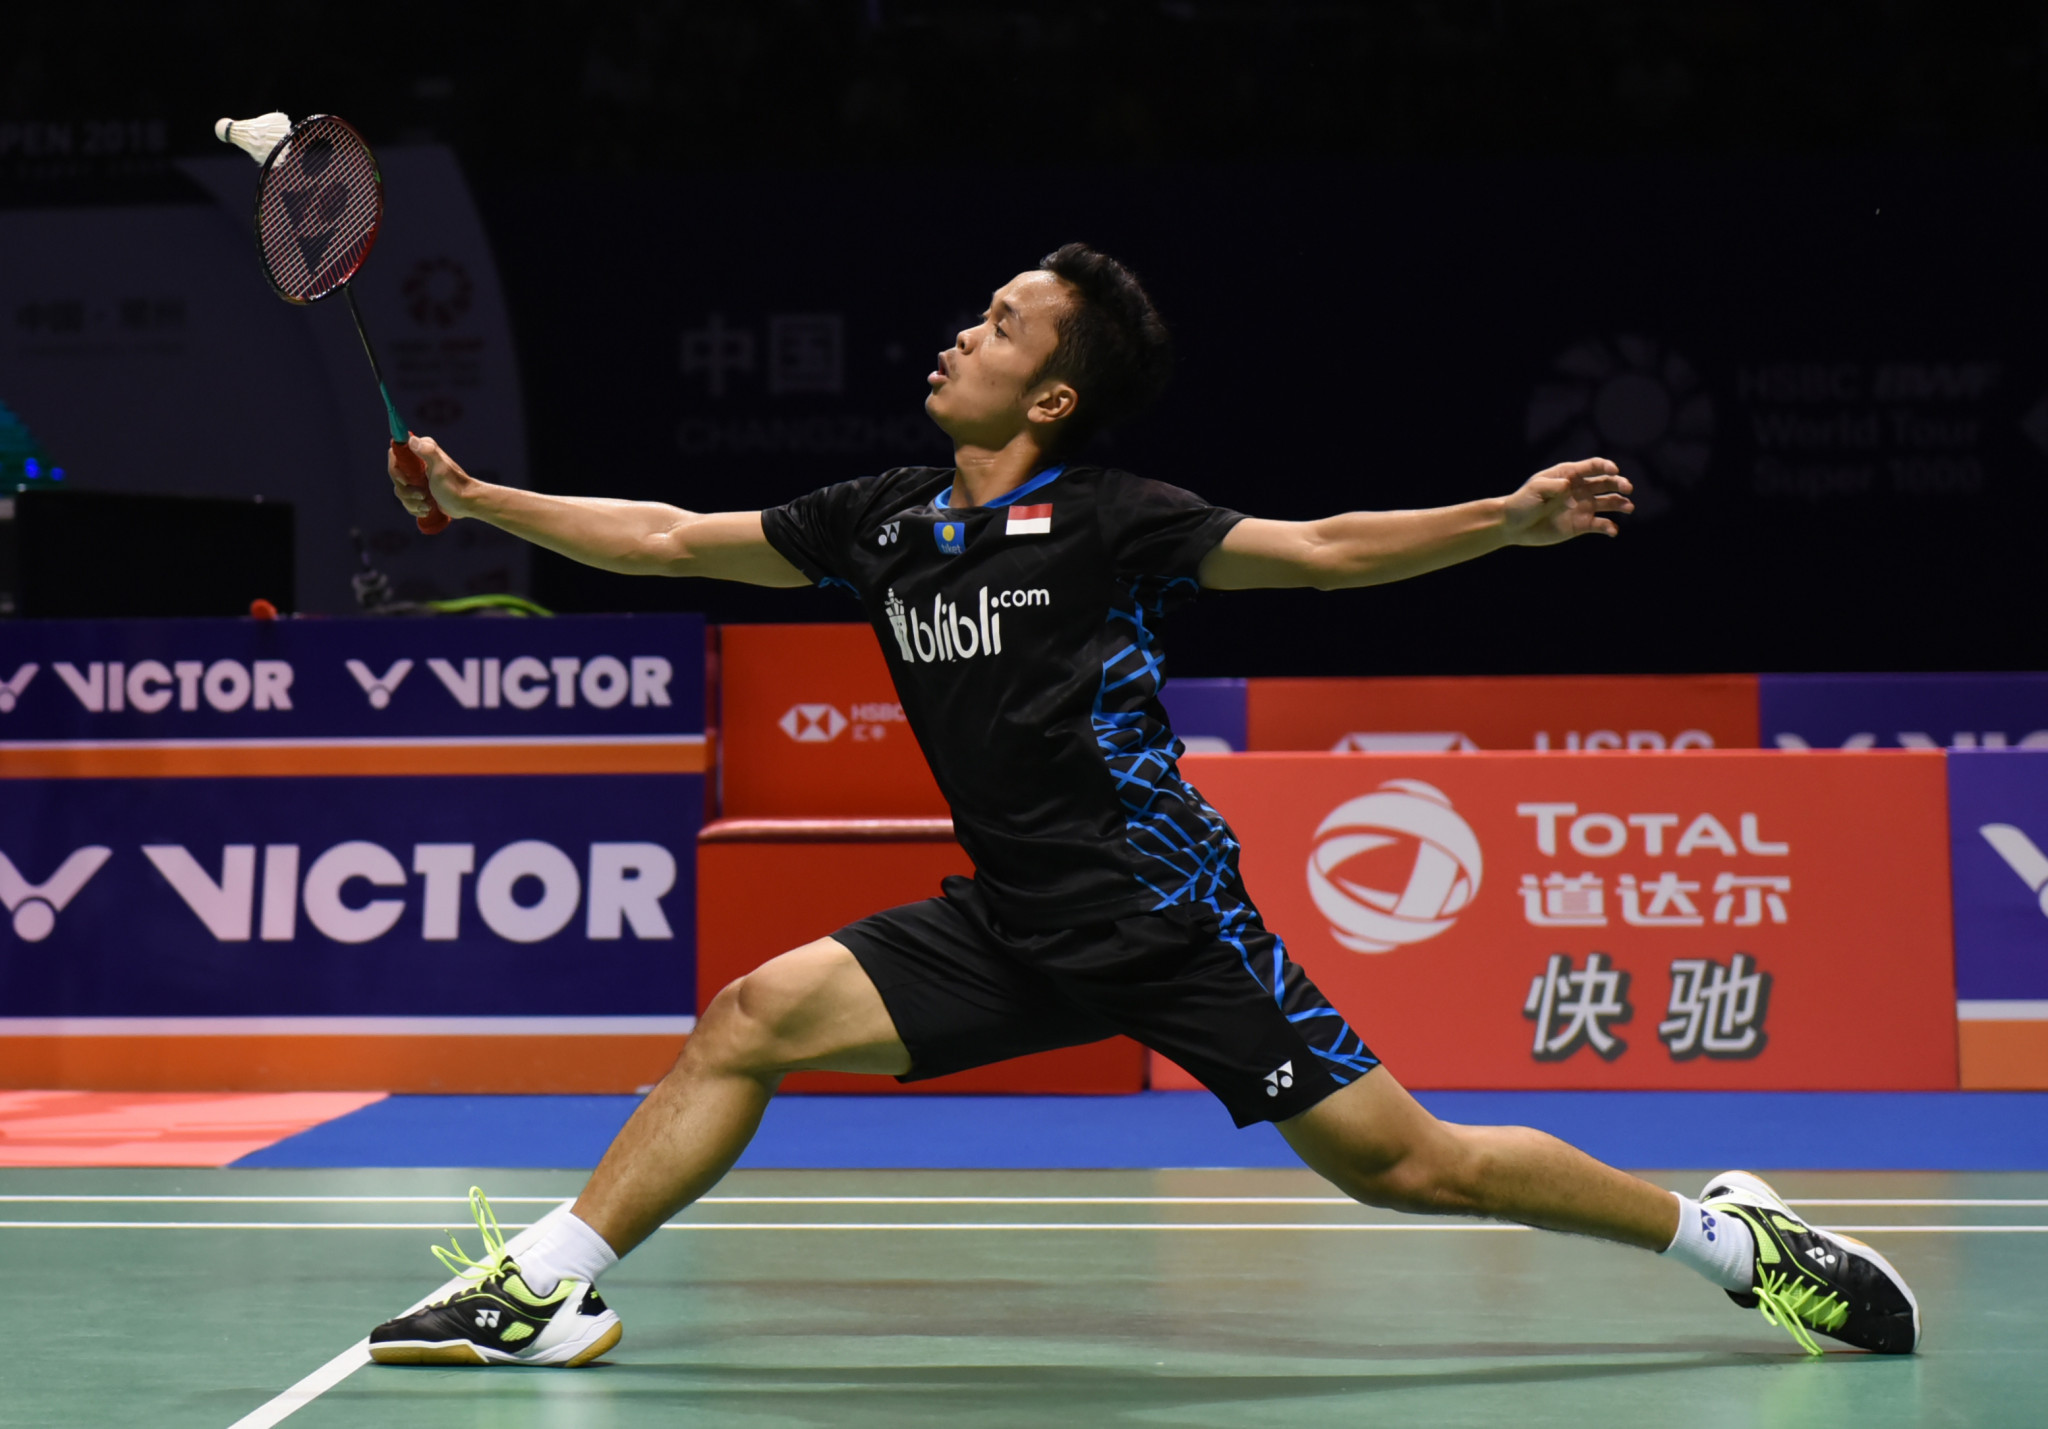 Indonesia's China Open champion Anthony Ginting suffered a shock first round defeat at the BWF French Open in Paris ©Getty Images